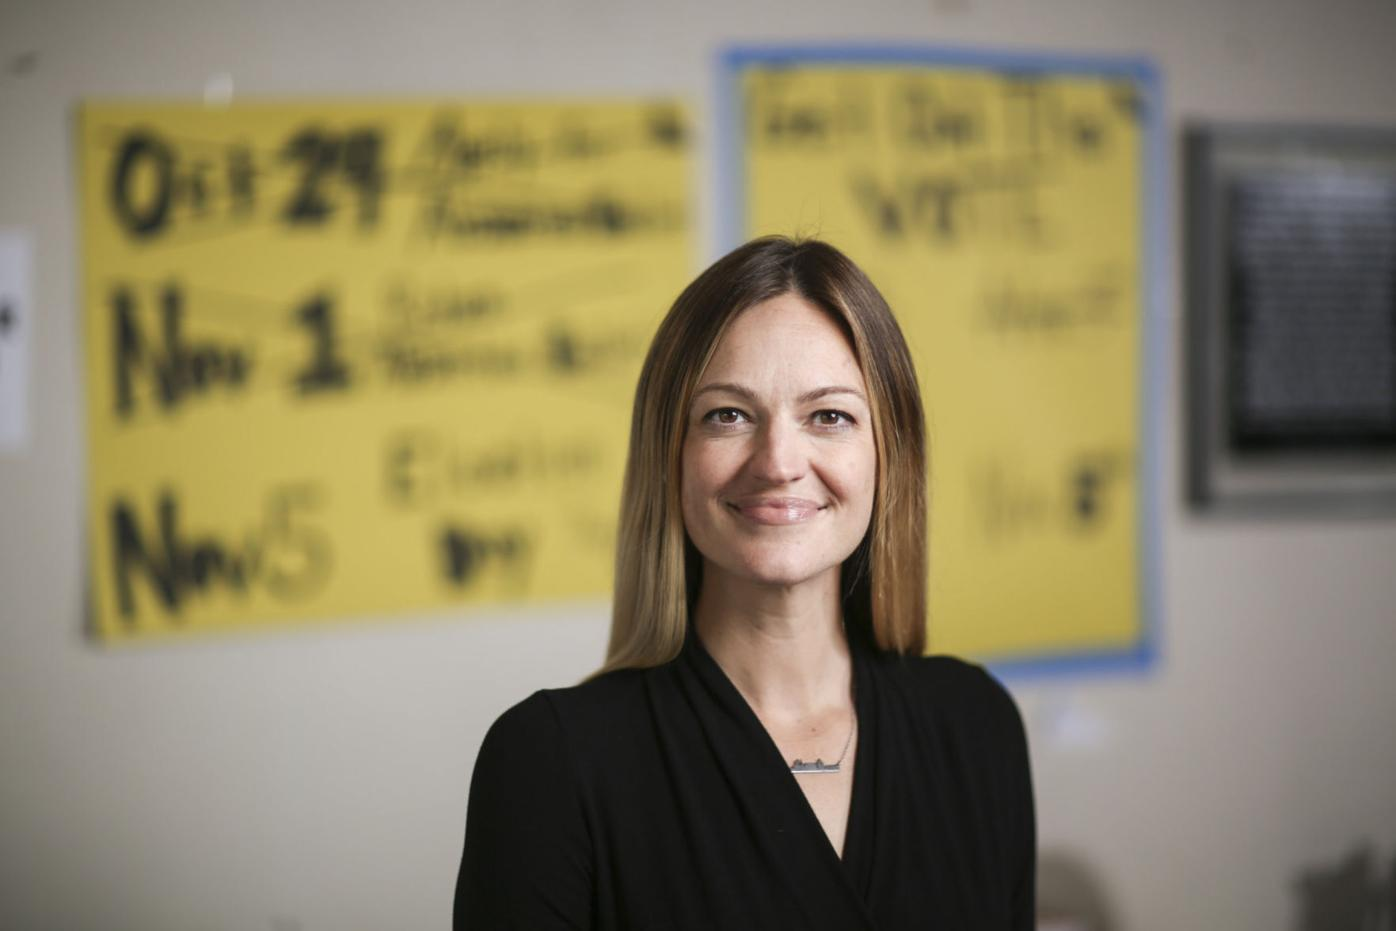 Cognetti leads the campaign money race in bid for re-election